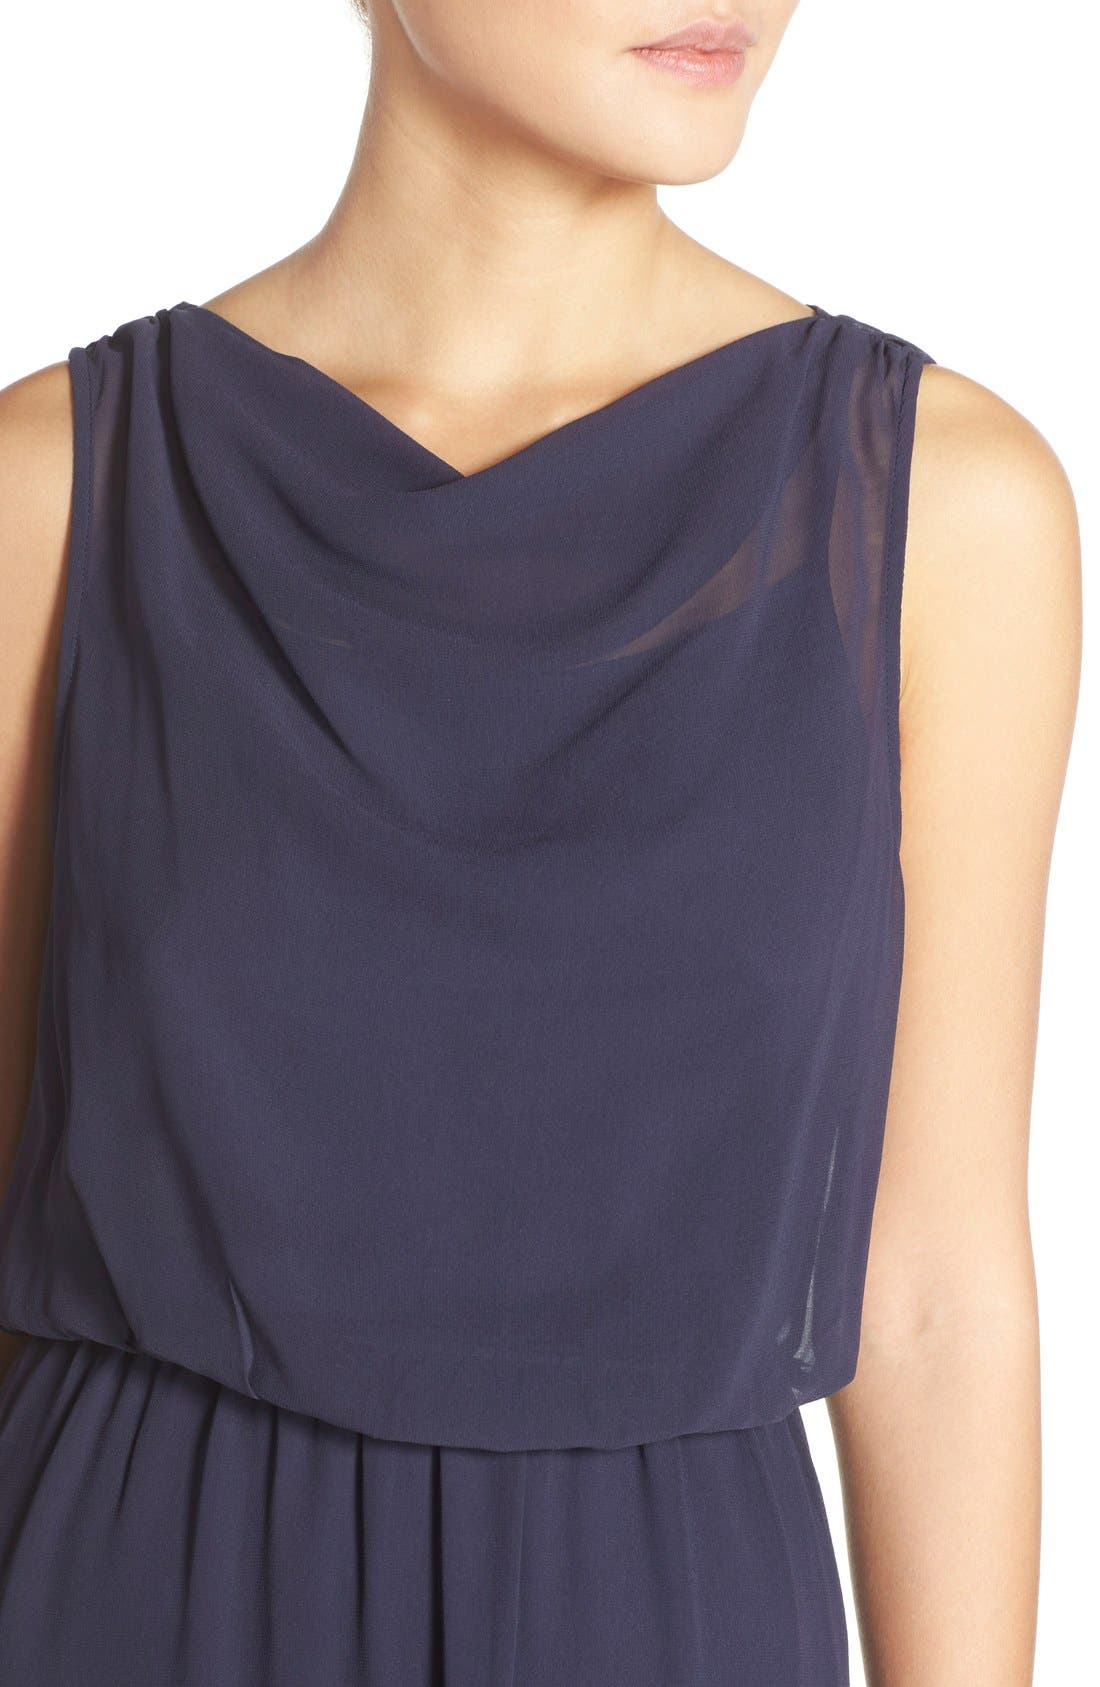 by Lauren Conrad 'Springfield' Cowl Neck Chiffon Gown,                             Alternate thumbnail 4, color,                             410